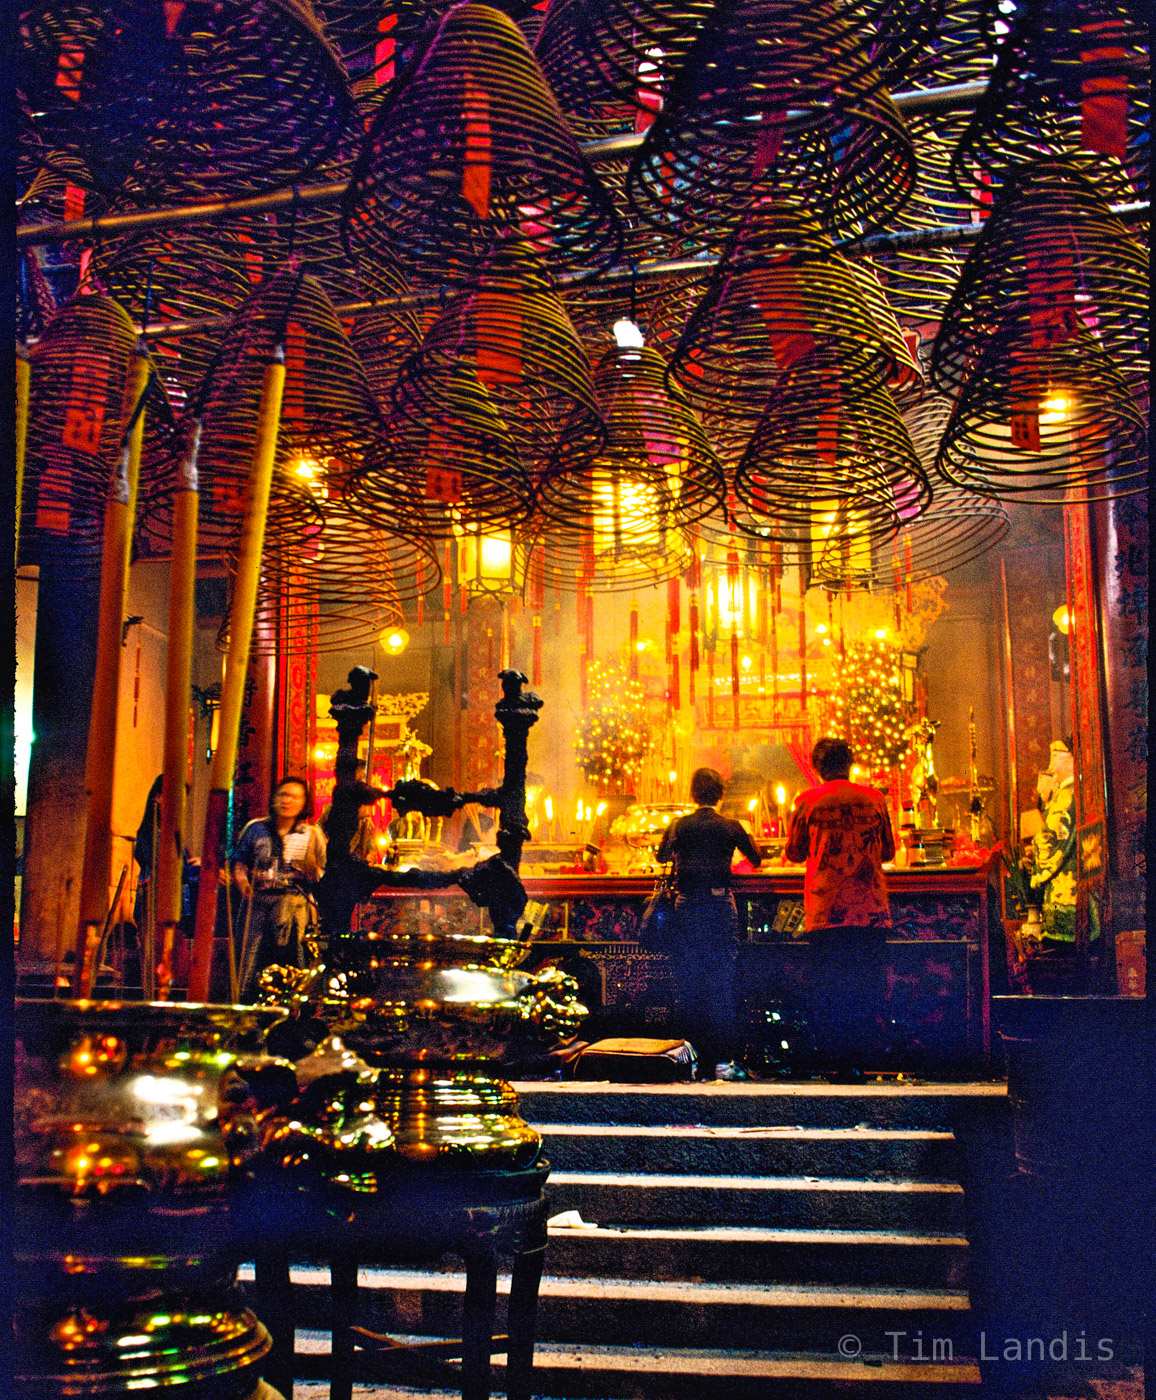 Worshippers burn incense in a smoke filled temple